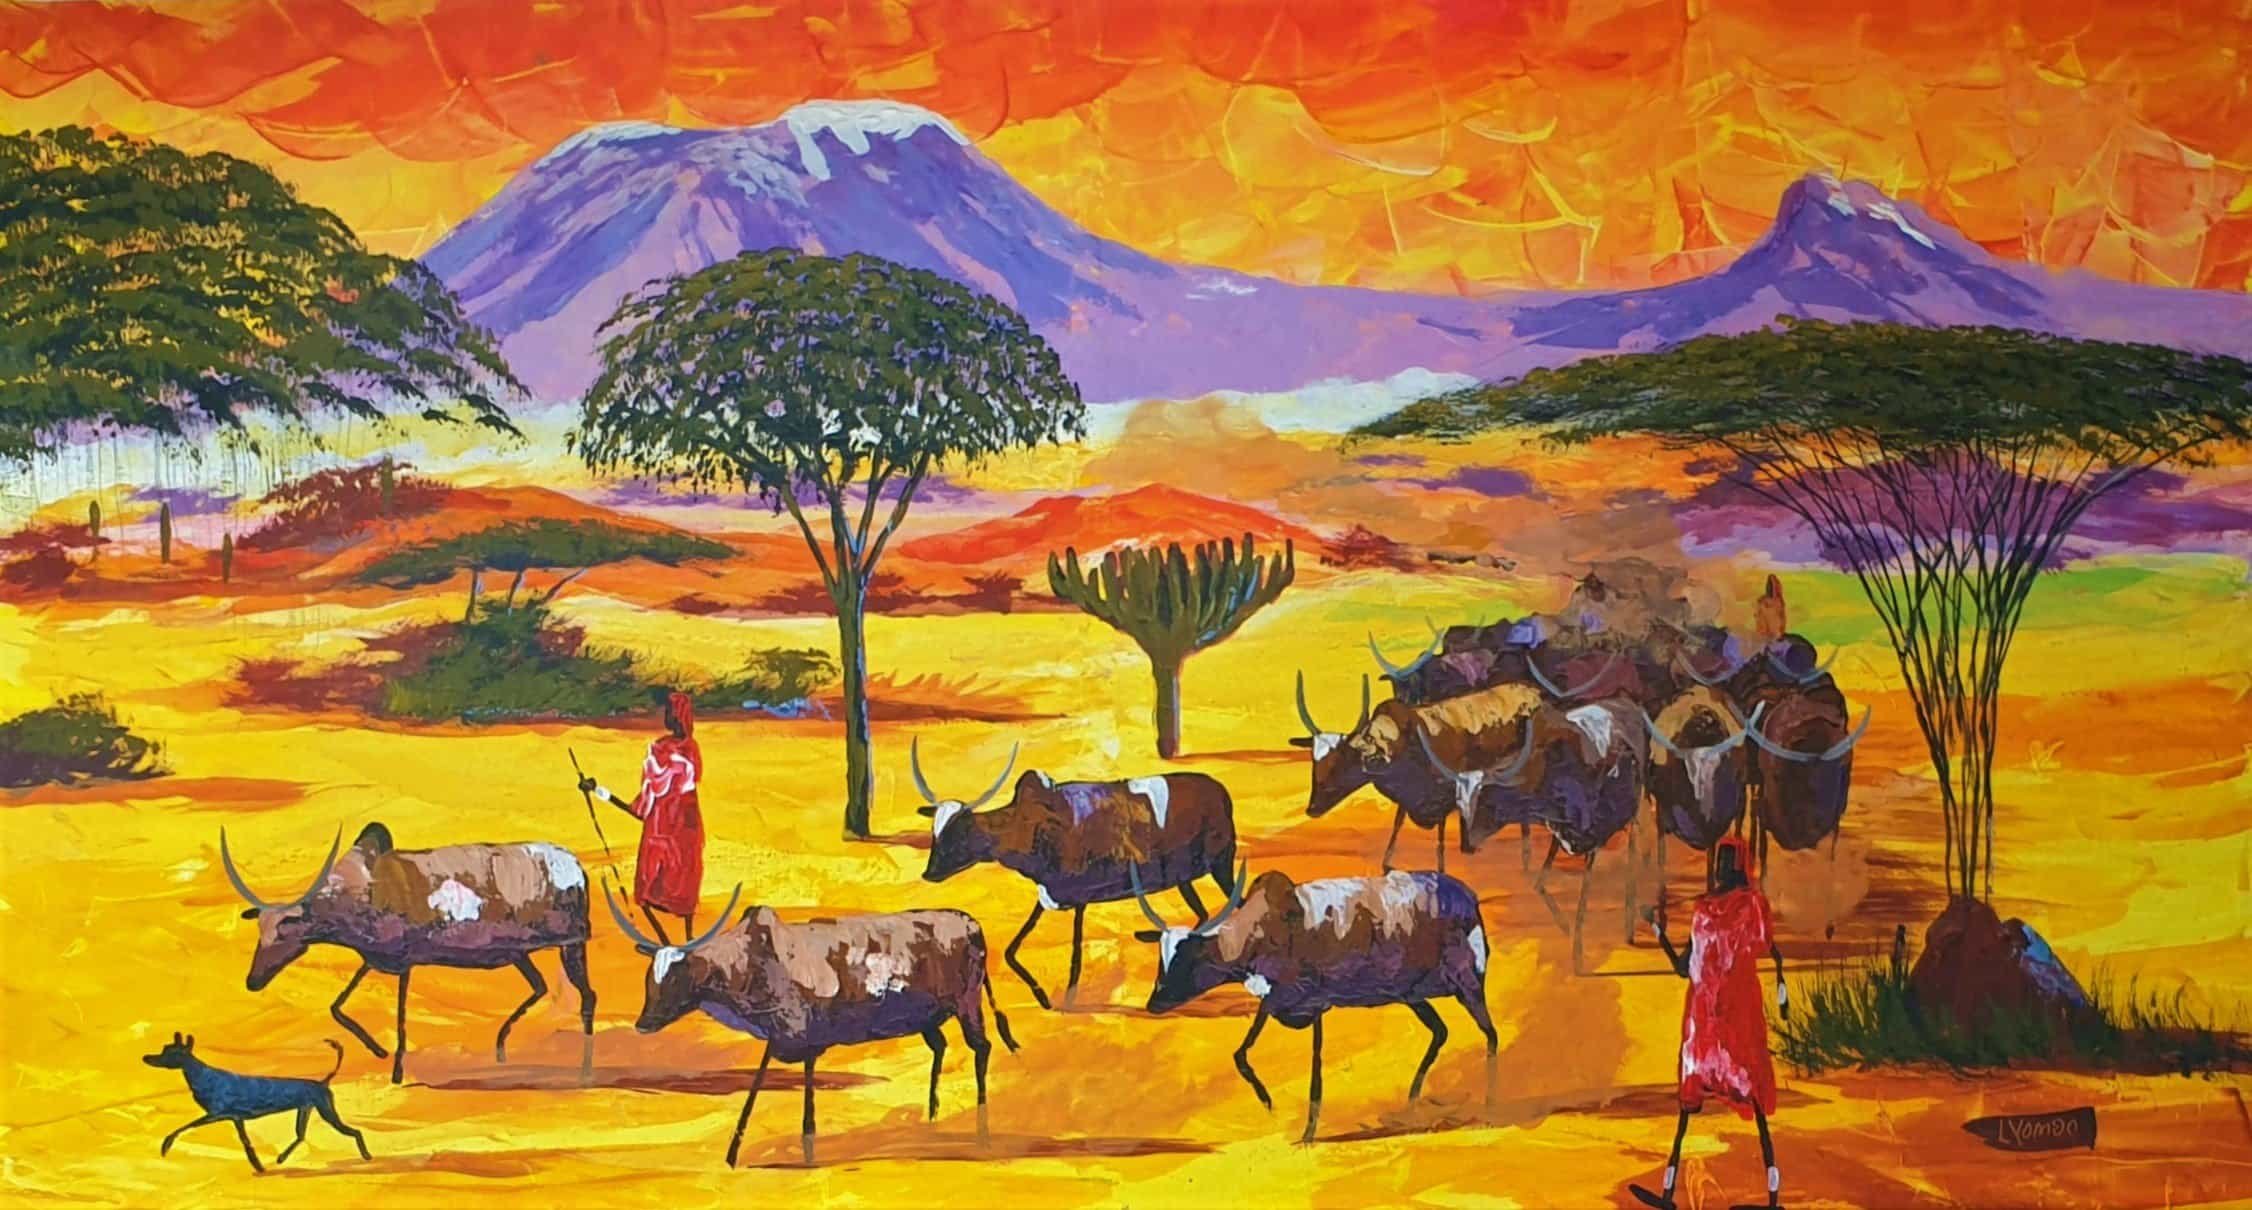 African painting of shepherds and animals